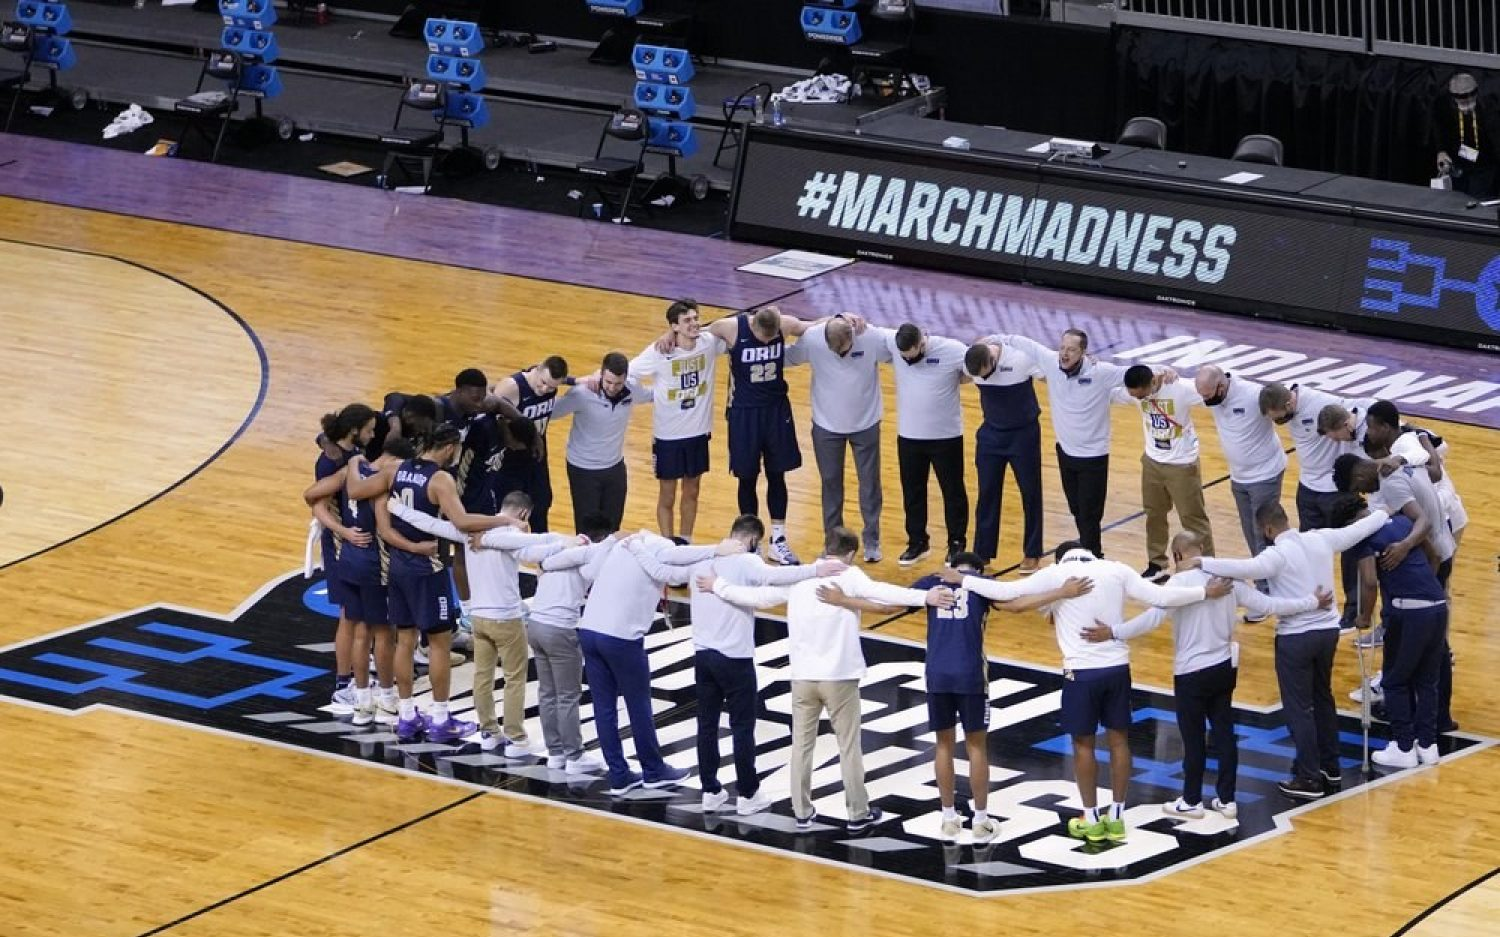 Big upsets mark early rounds of the NCAA Tournament